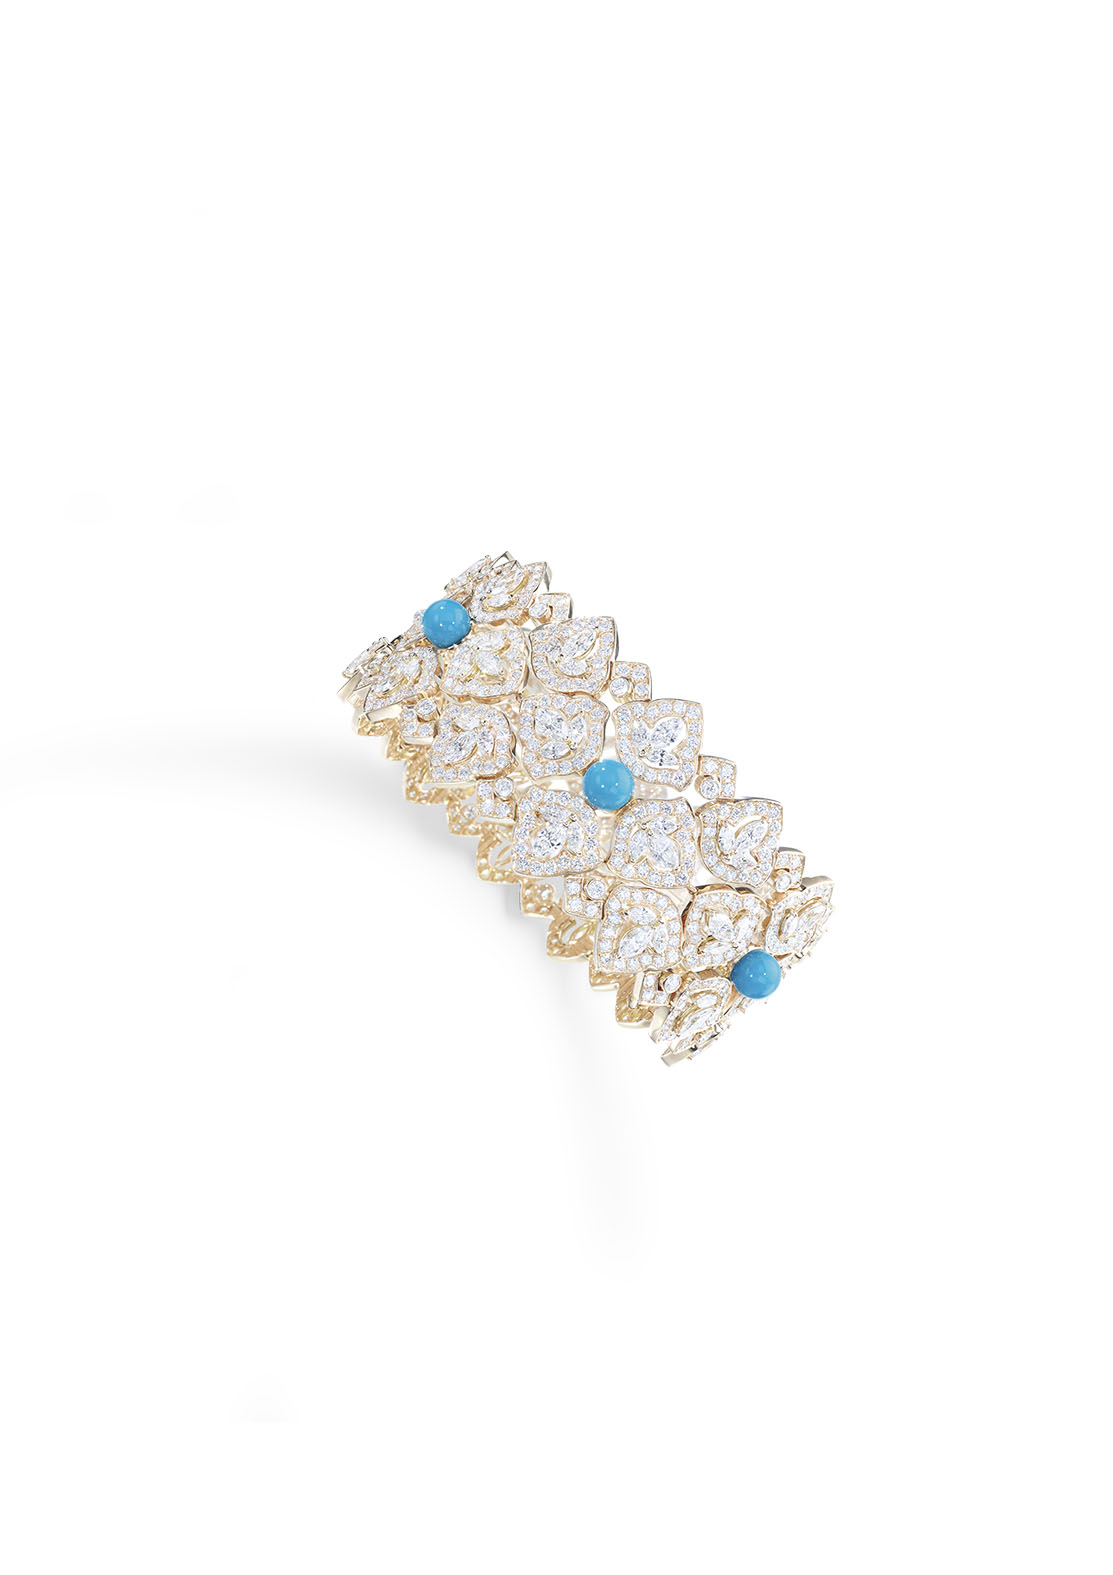 Secrets and Lights Collection by Piaget Yellow Gold, Diamonds, and Turquoise Bracelet